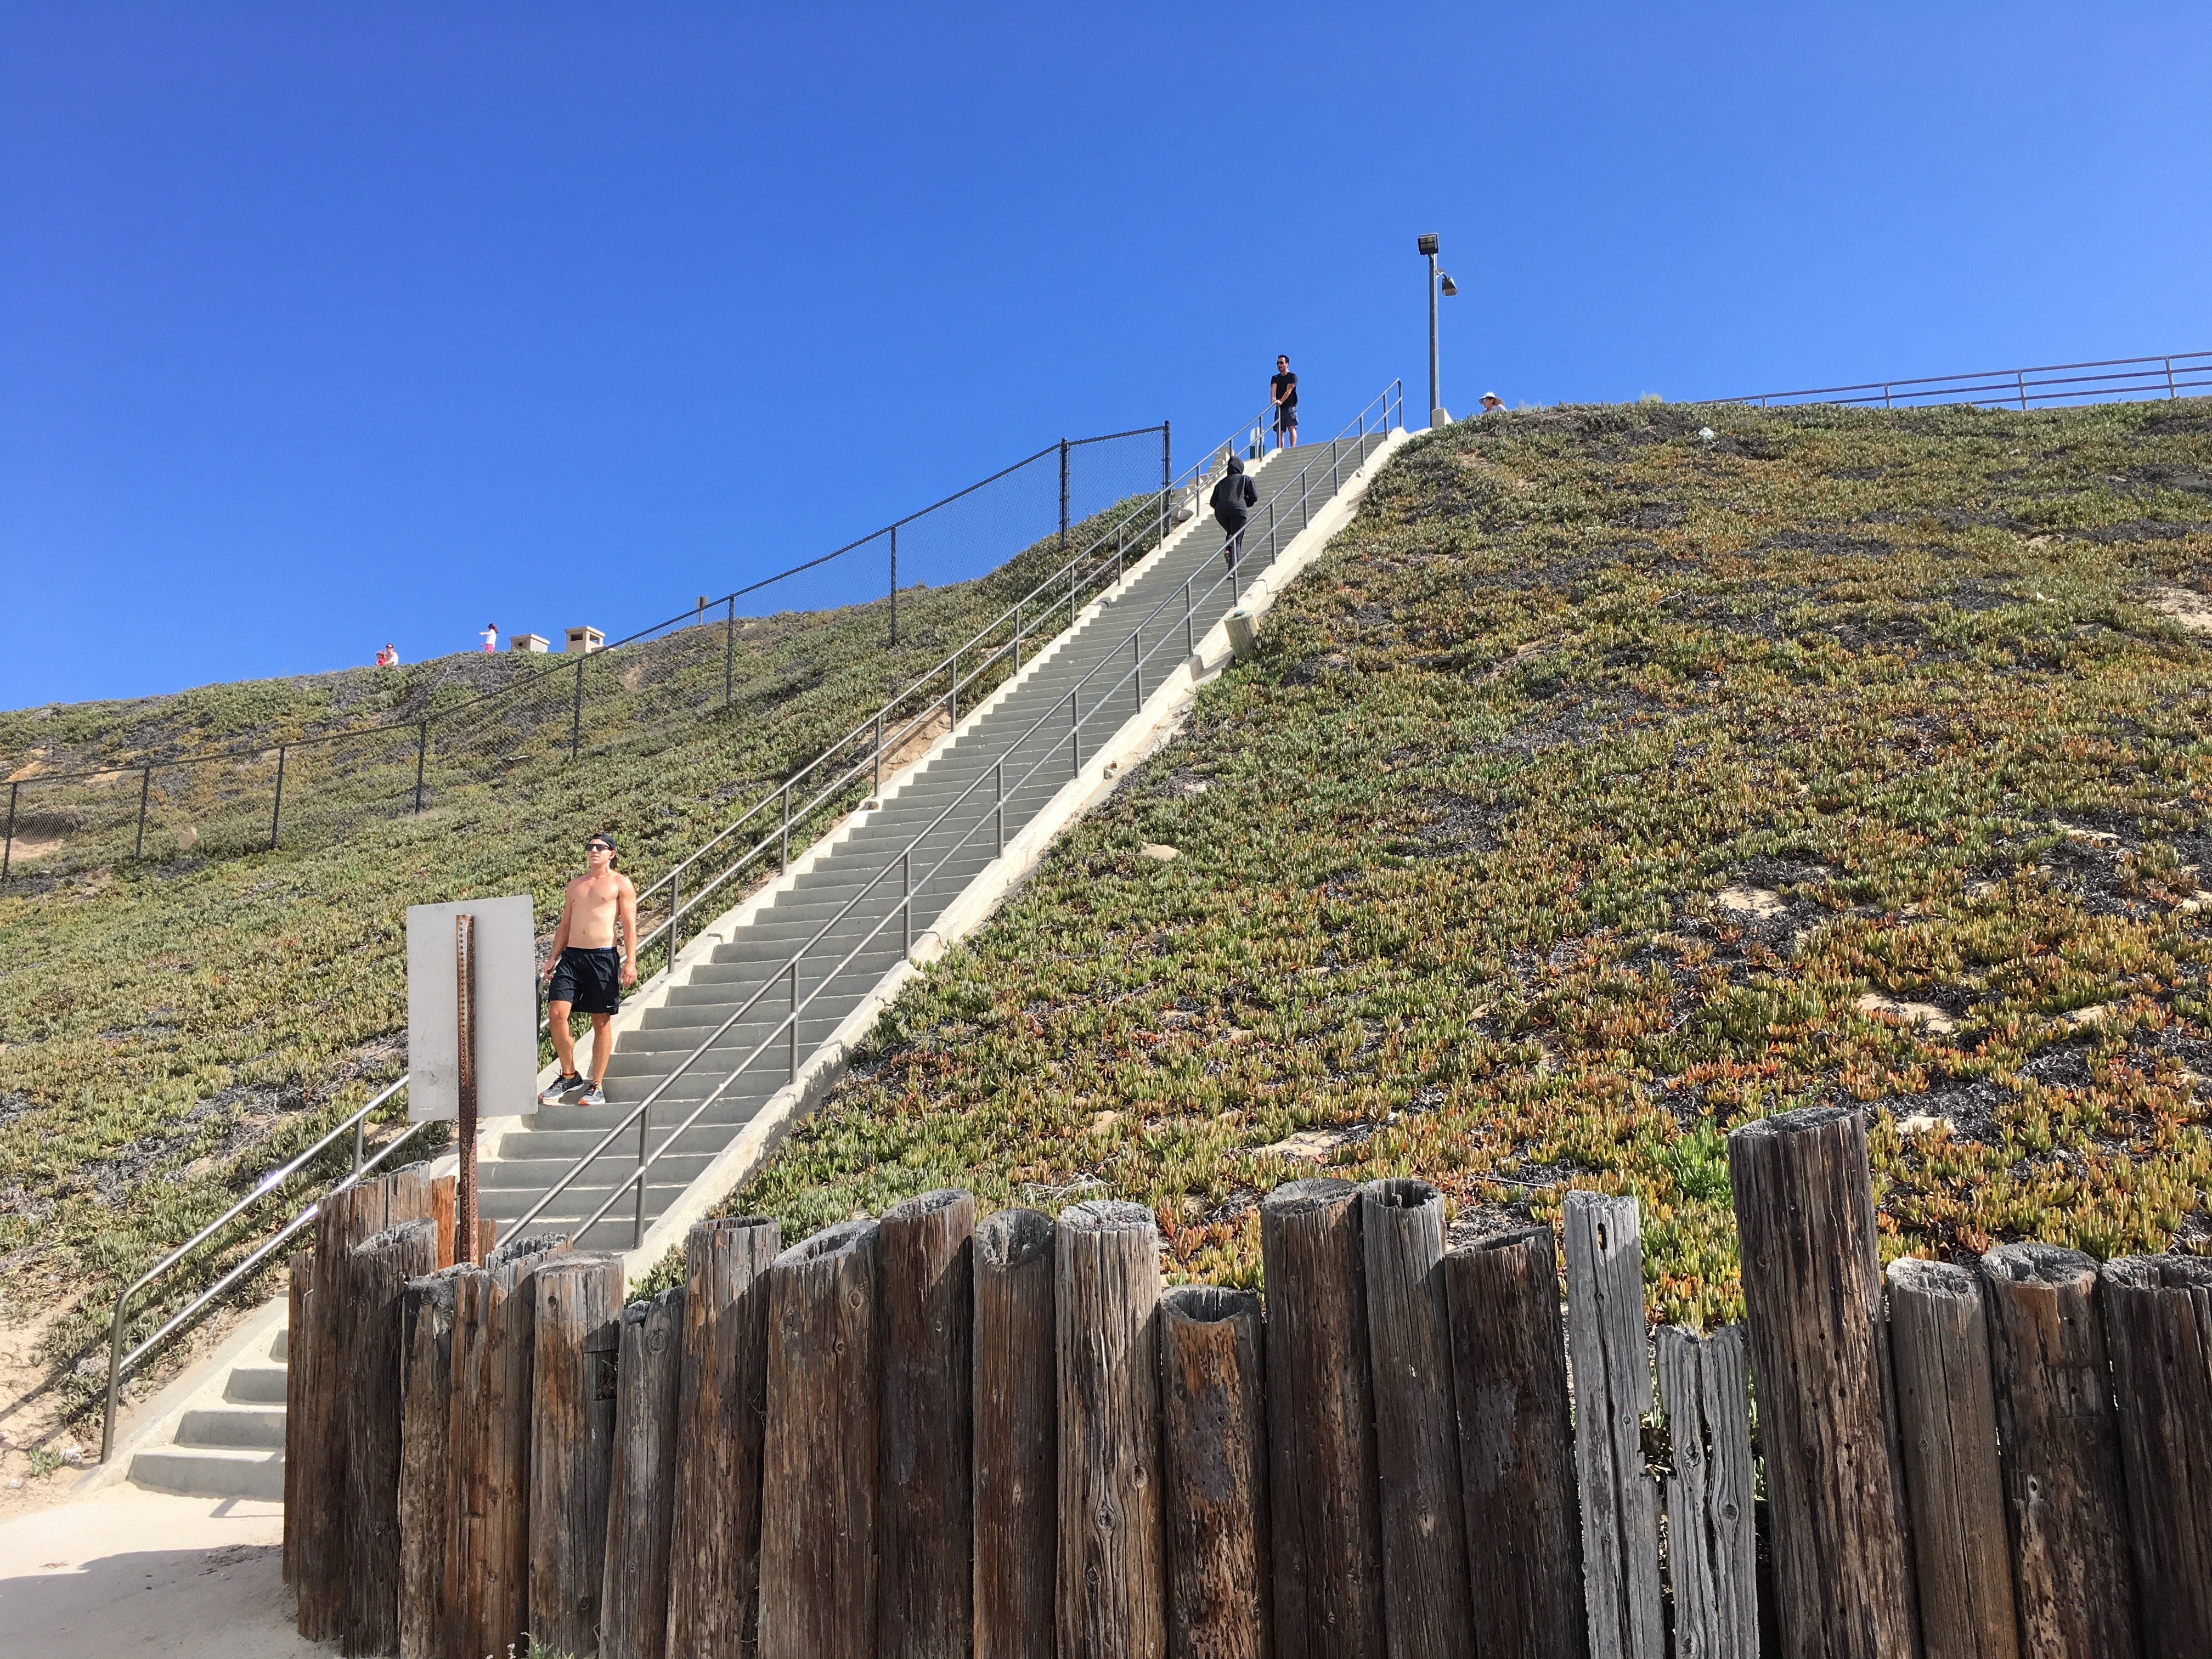 Angelenos Flock To The Culver City Or Santa Monica Stairs For A Great Leg  Workout, But Did You Know That South Redondo Beach Has A Set Of Stairs With  An ...